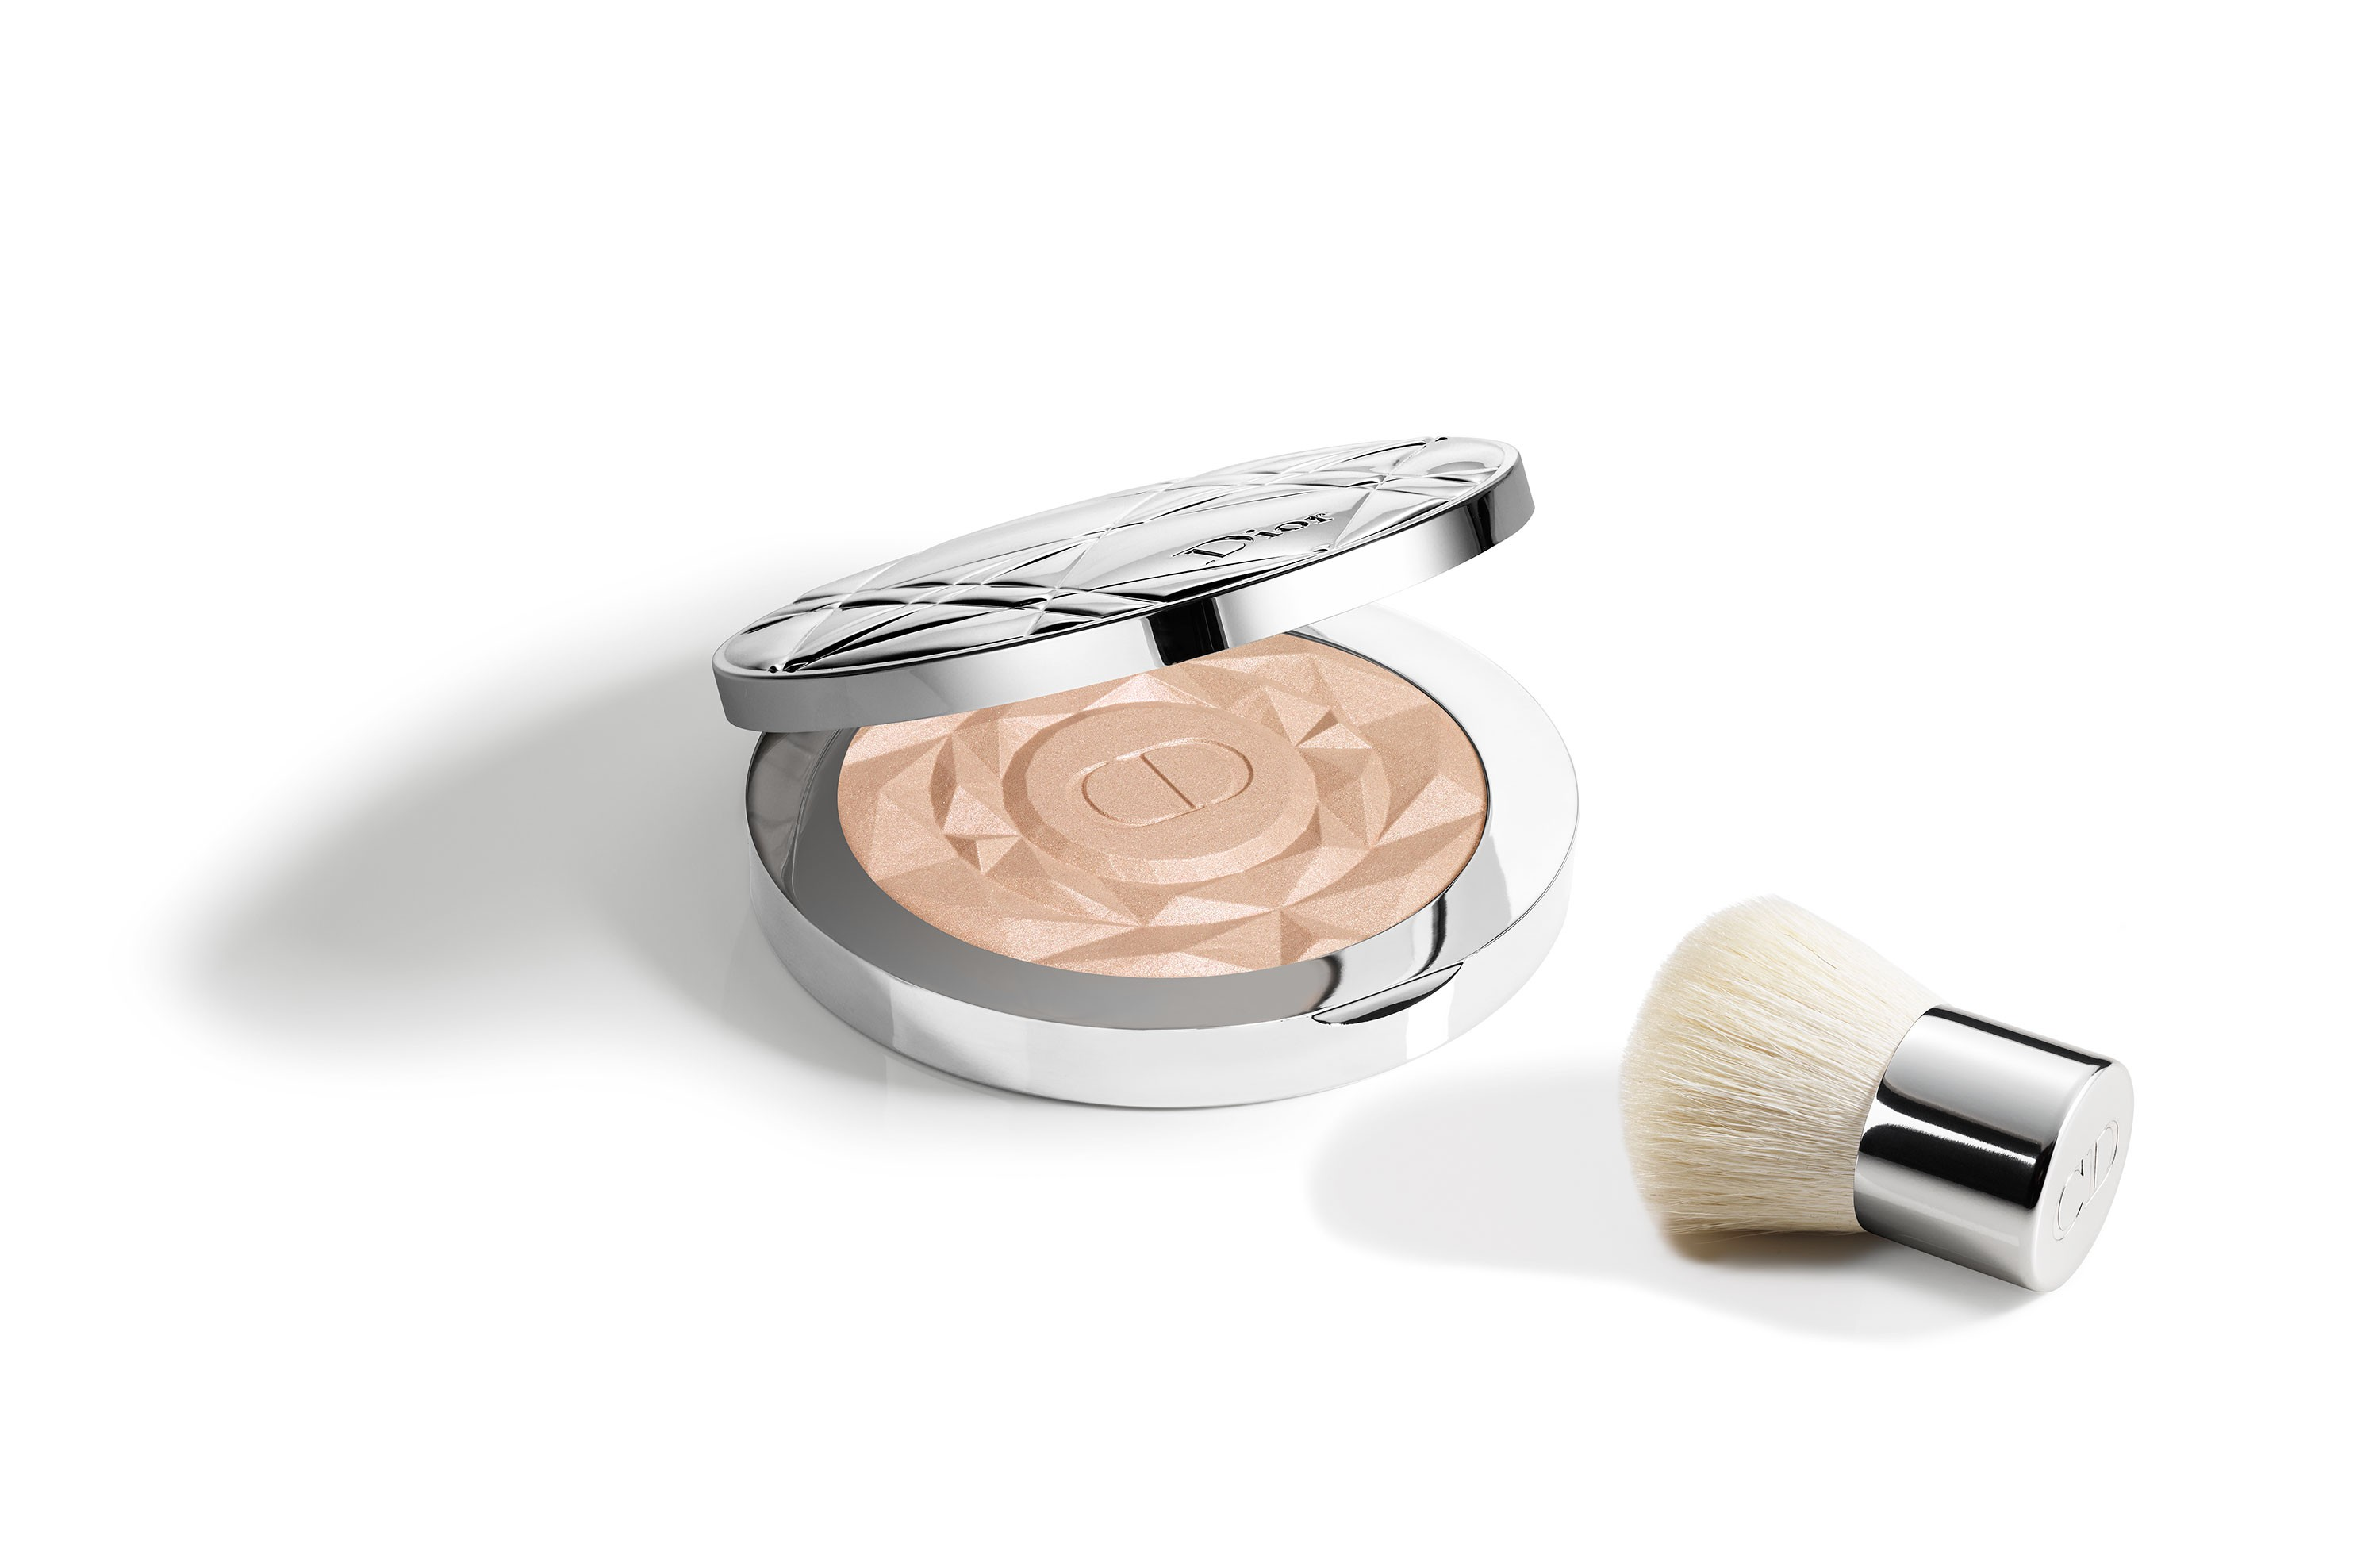 Dior Diorskin Nude Air Luminizer - Precious Rocks Limited Edition Shimmering Sculpting Powder